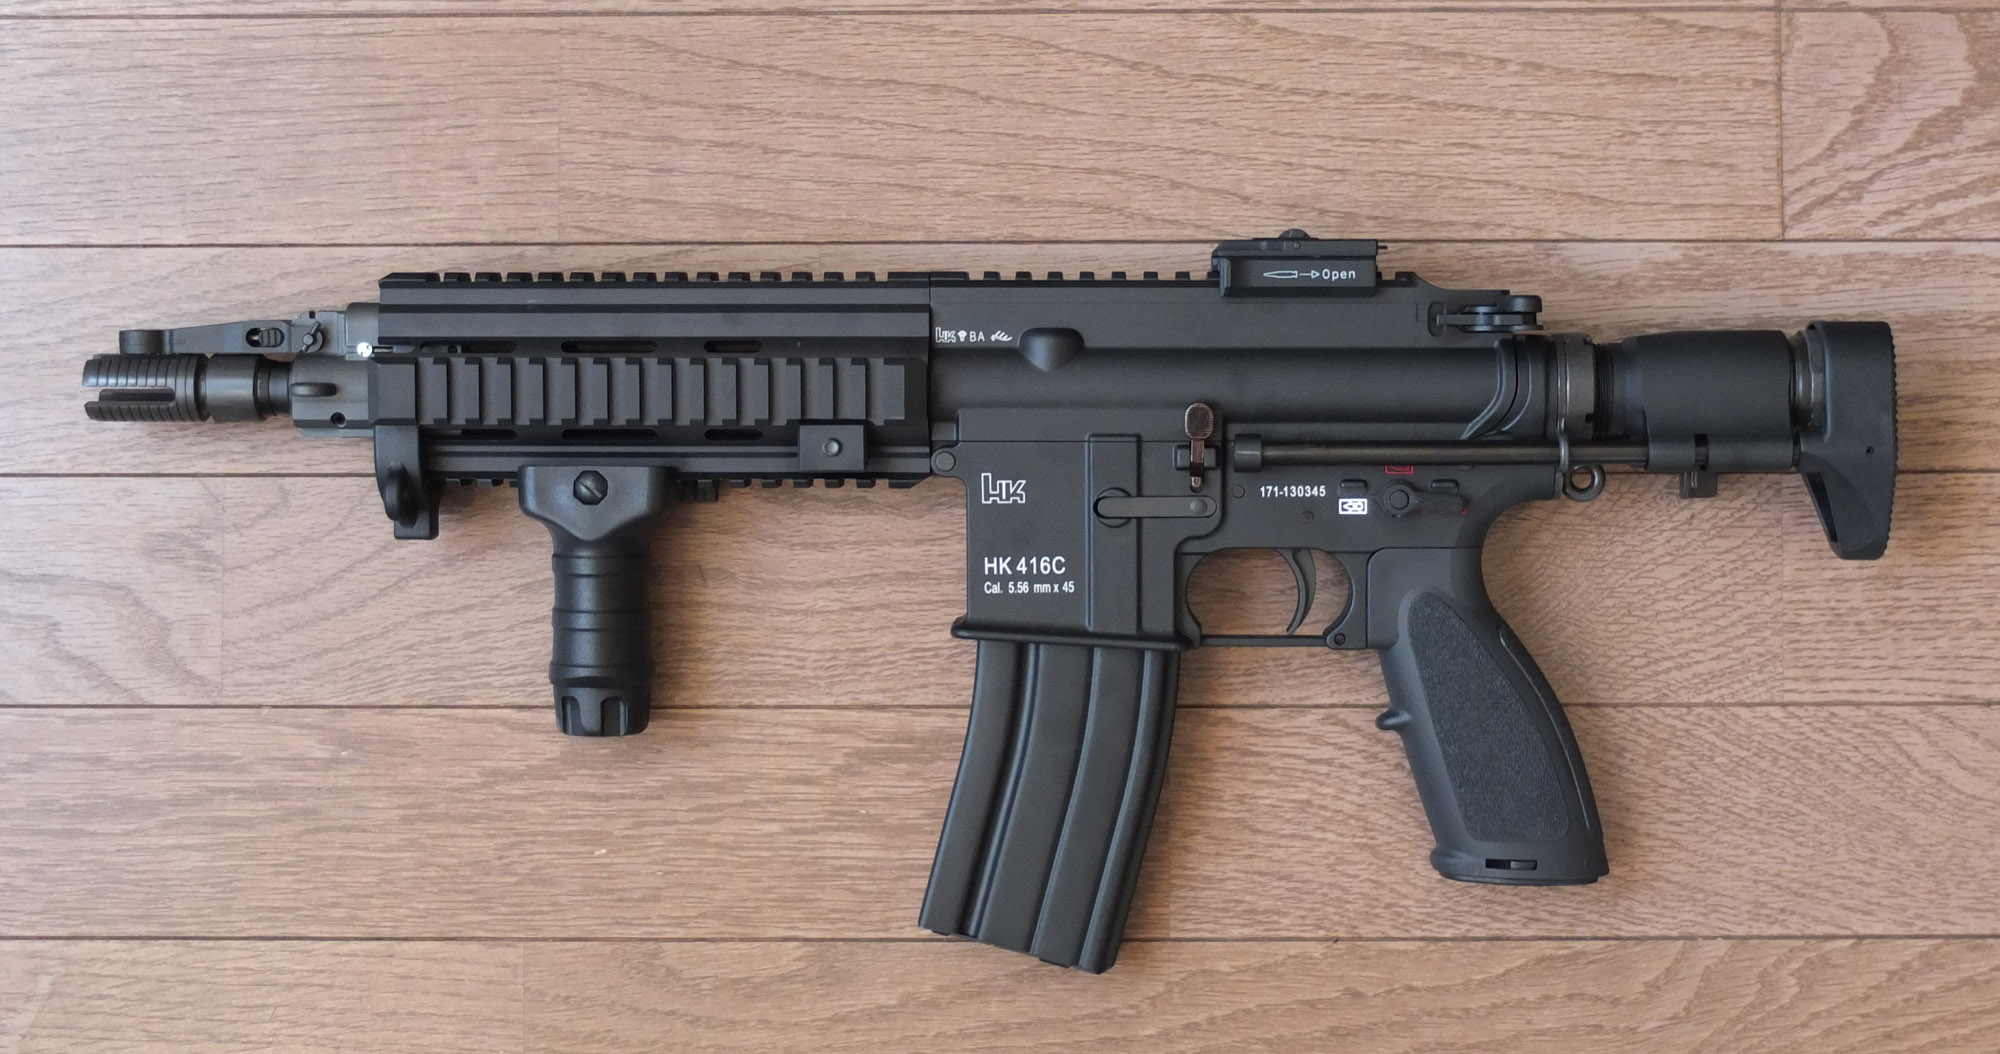 HK416C Suppressed on 416 html